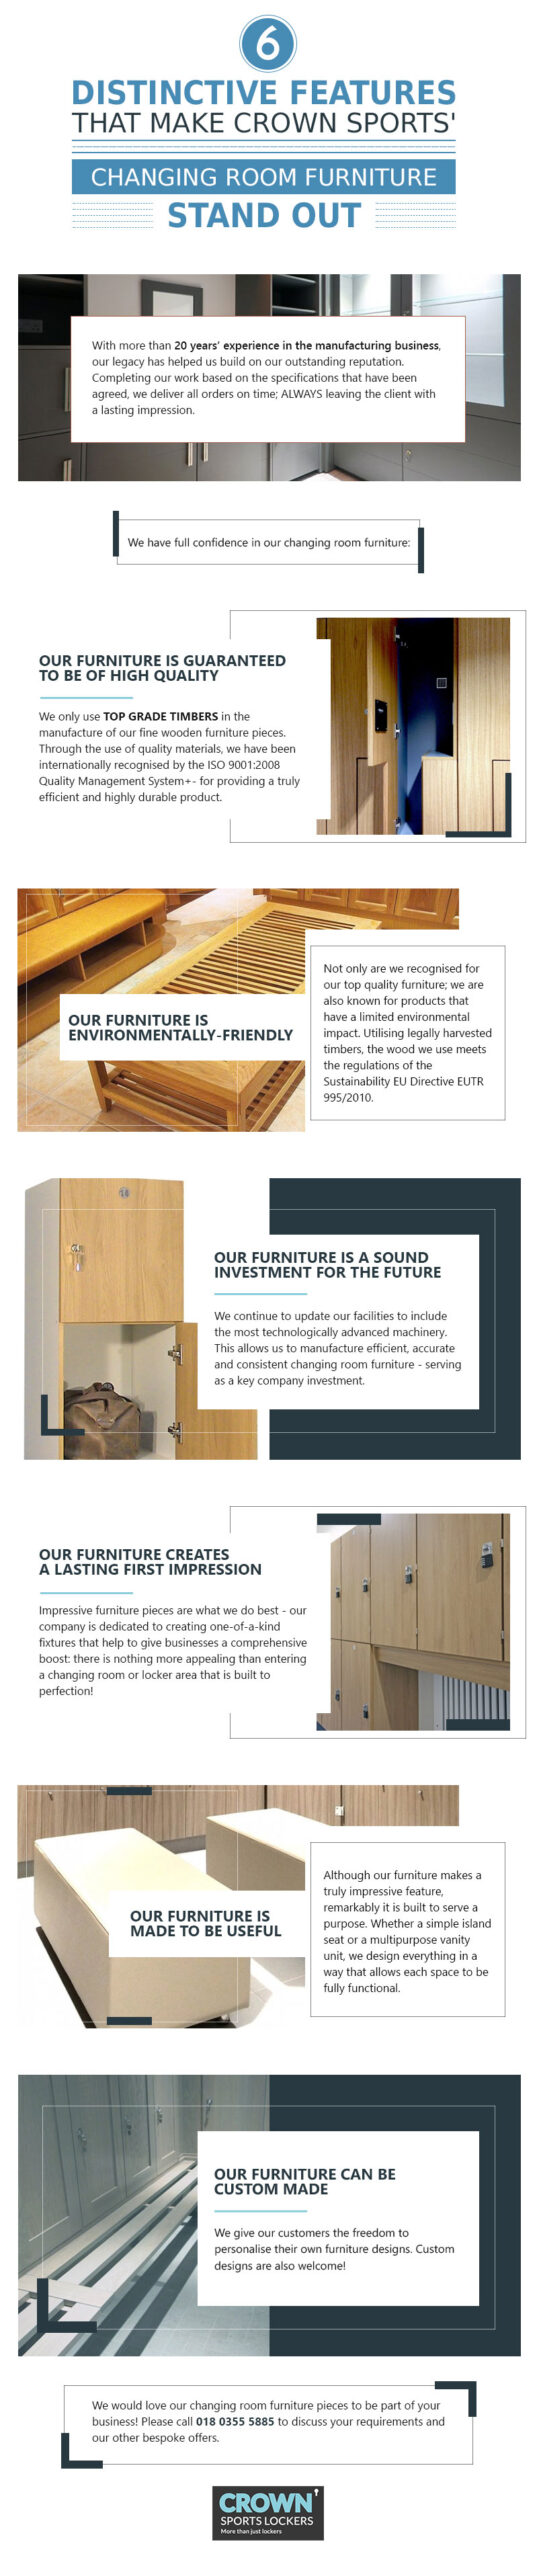 distinctibe features of our changing room furniture